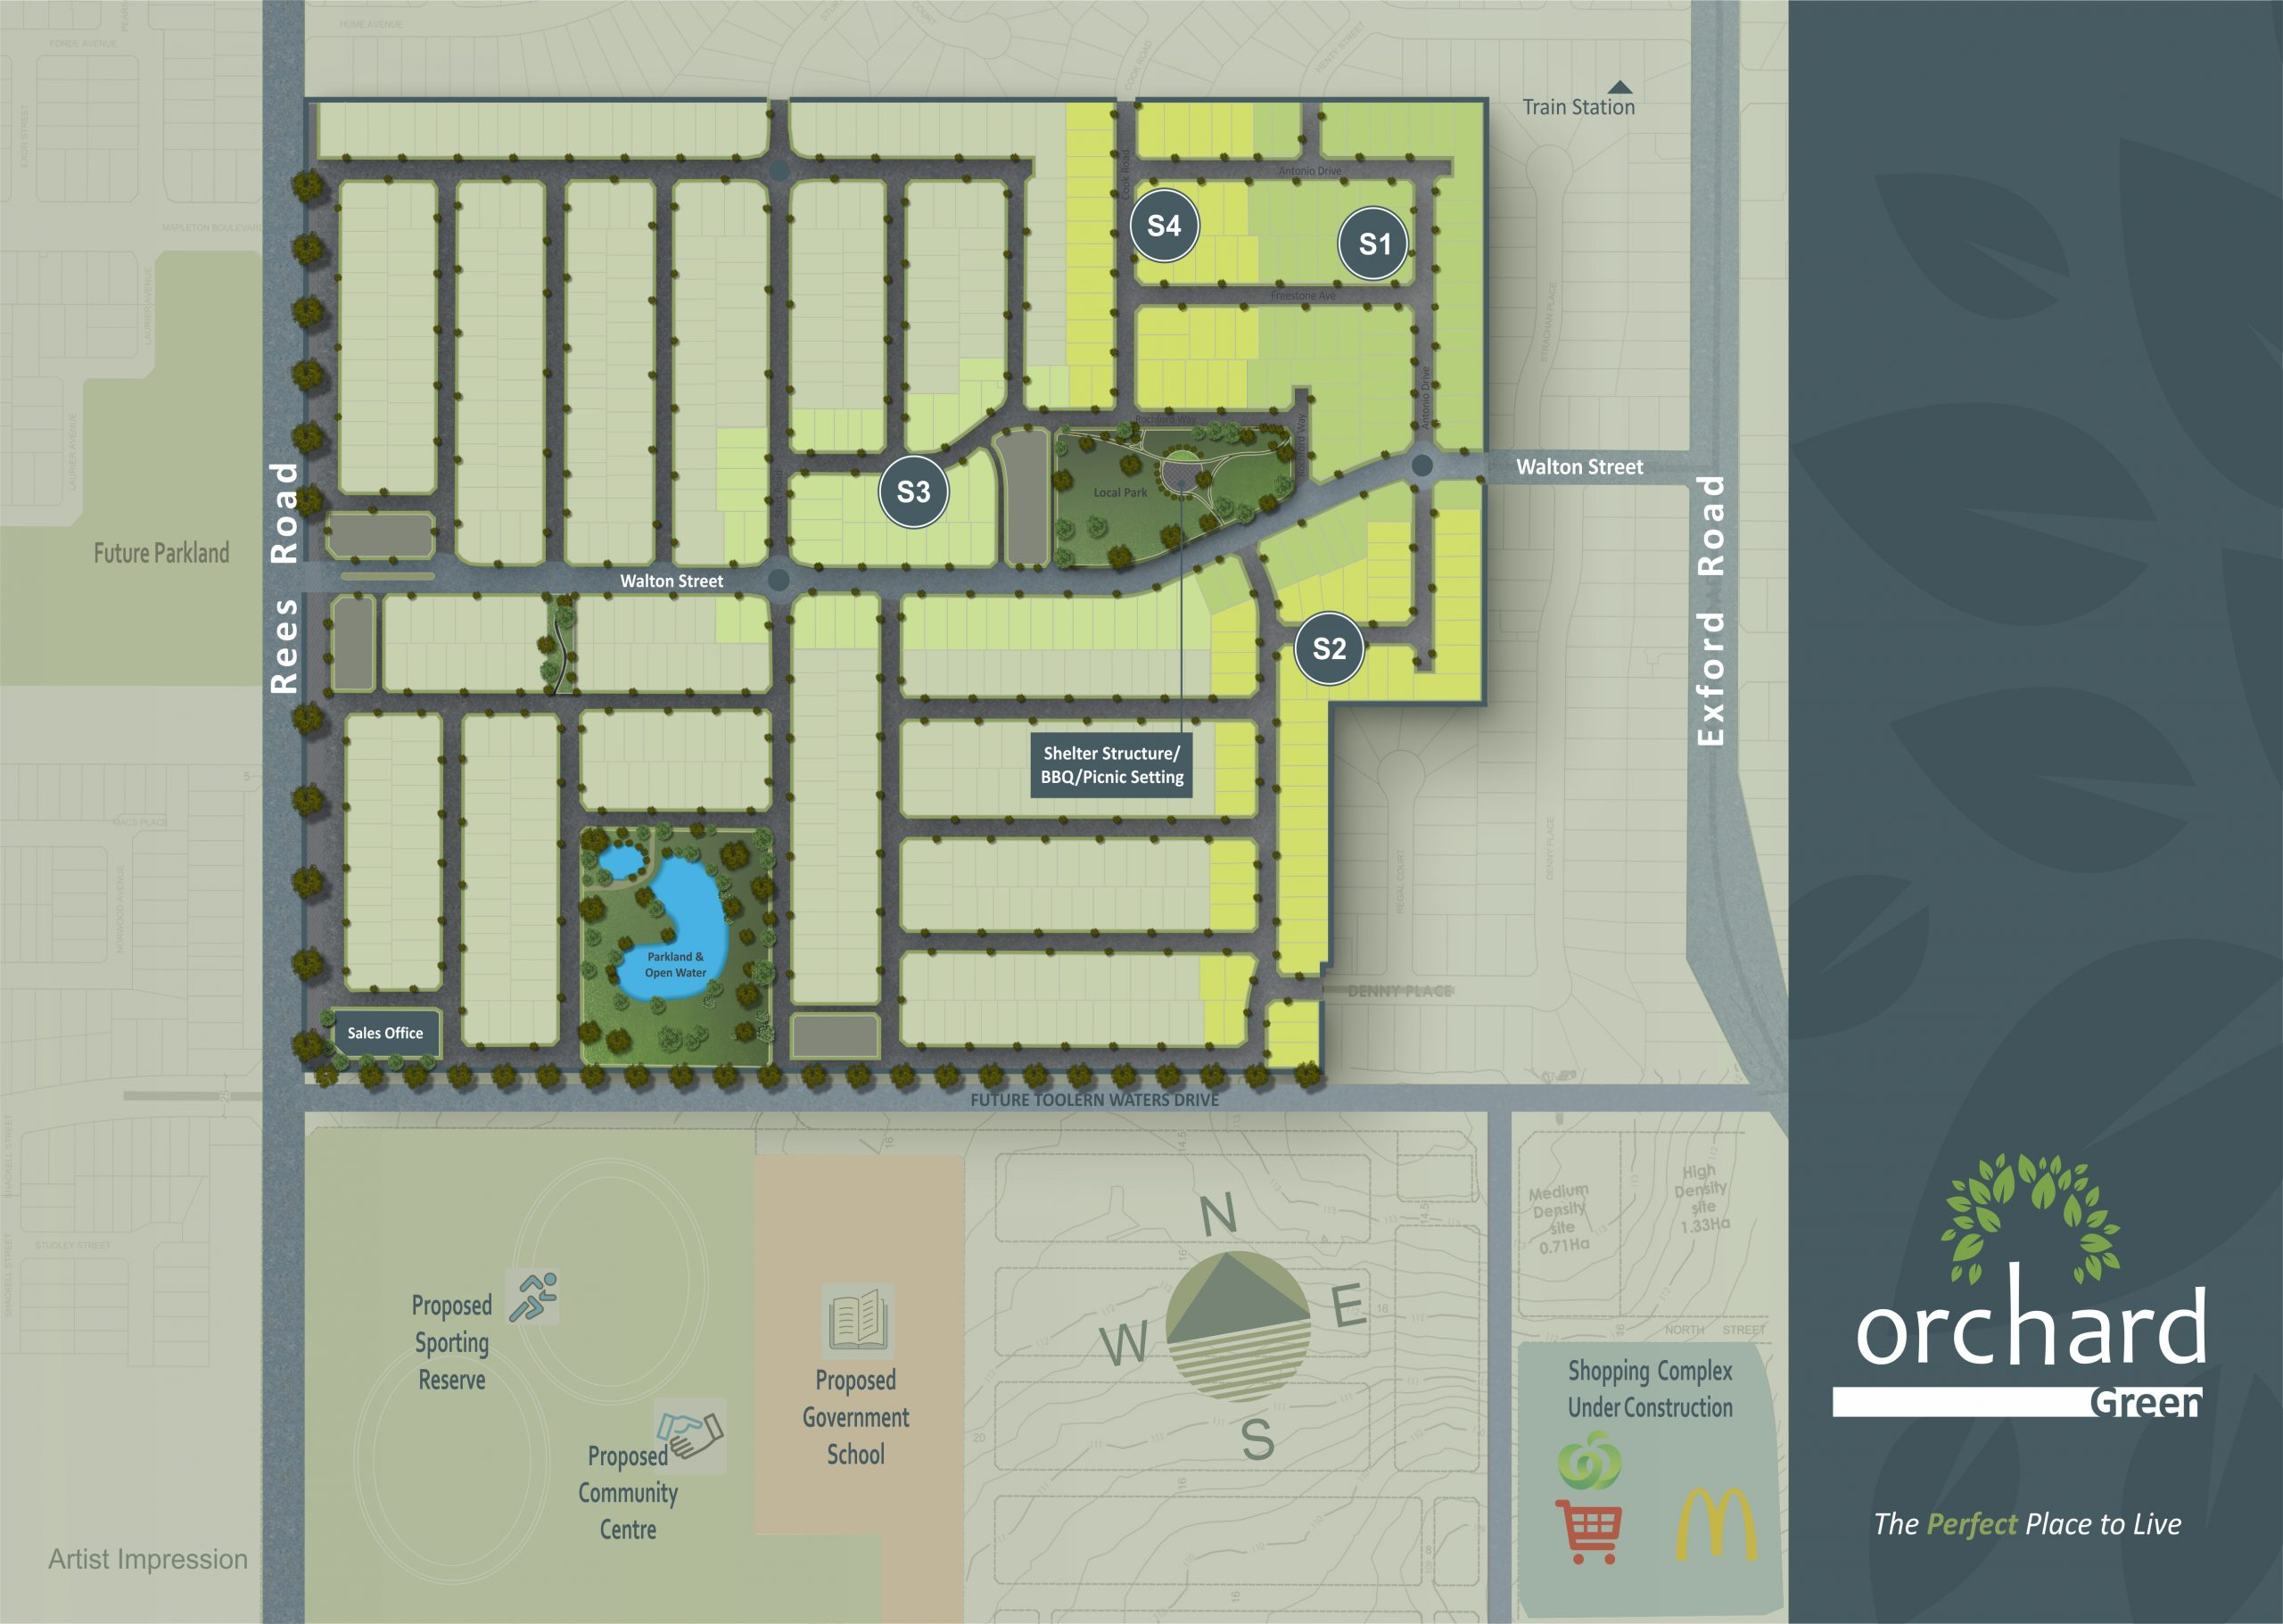 Orchard Green Master Plan